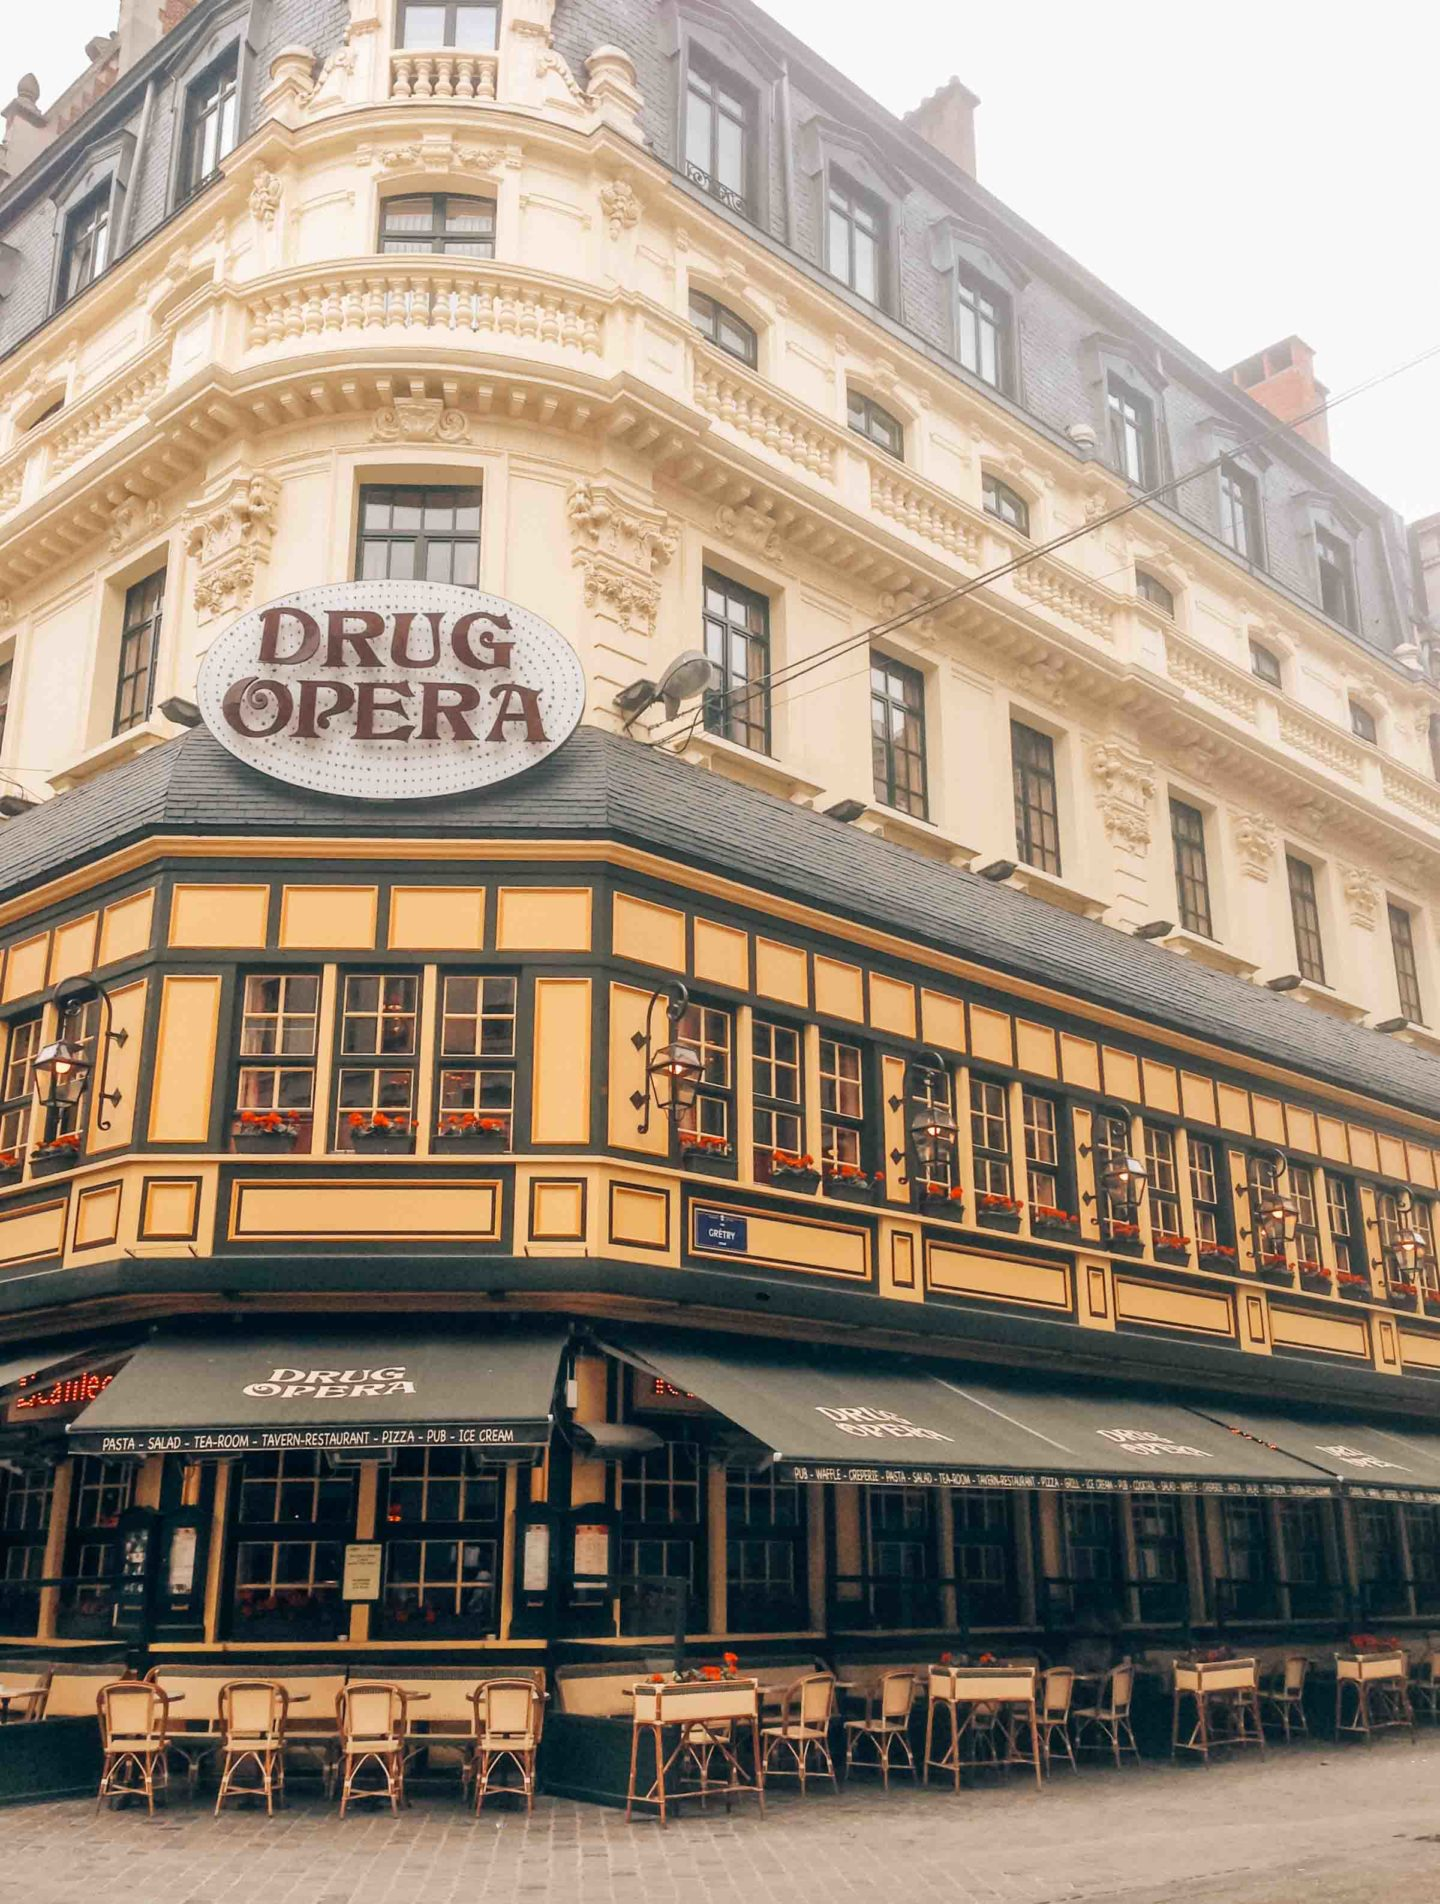 Have breakfast in the Drug Opera during your weekend in Brussels